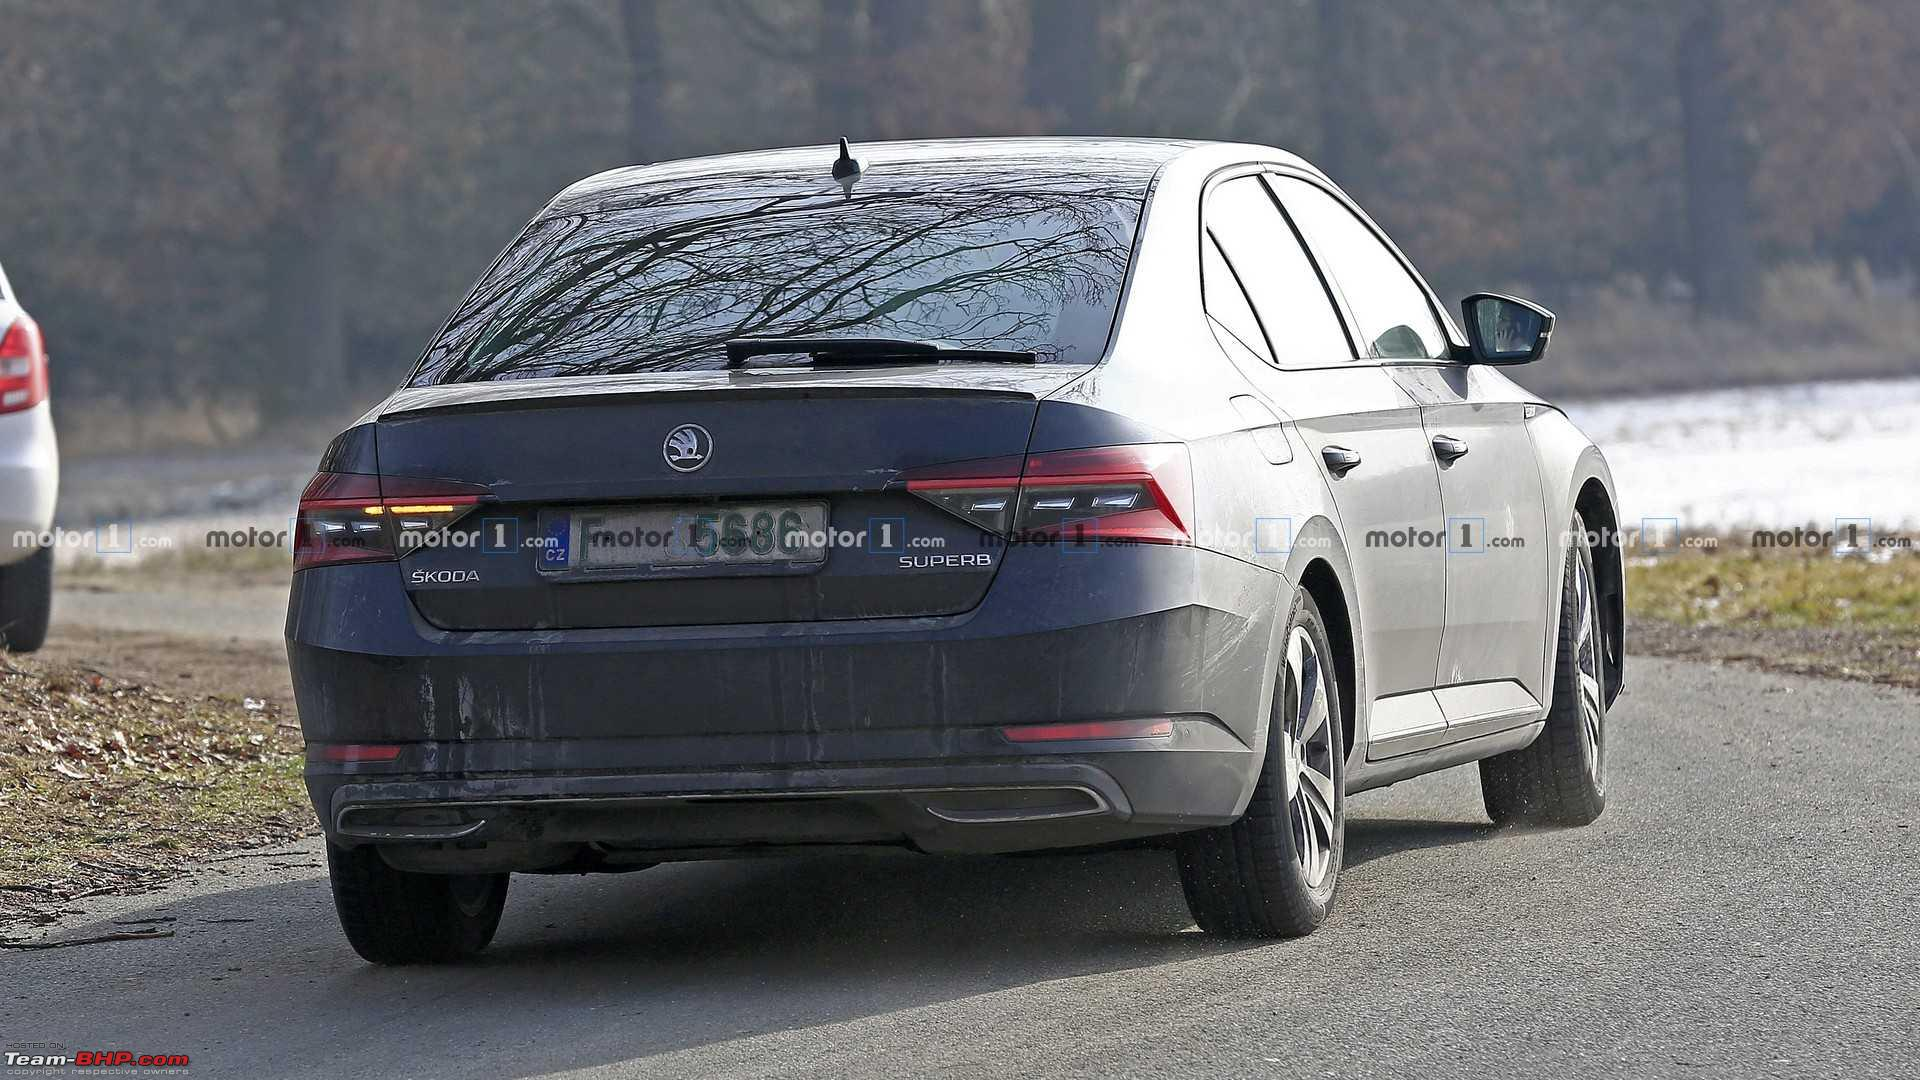 63 The Spy Shots Skoda Superb Price Design and Review